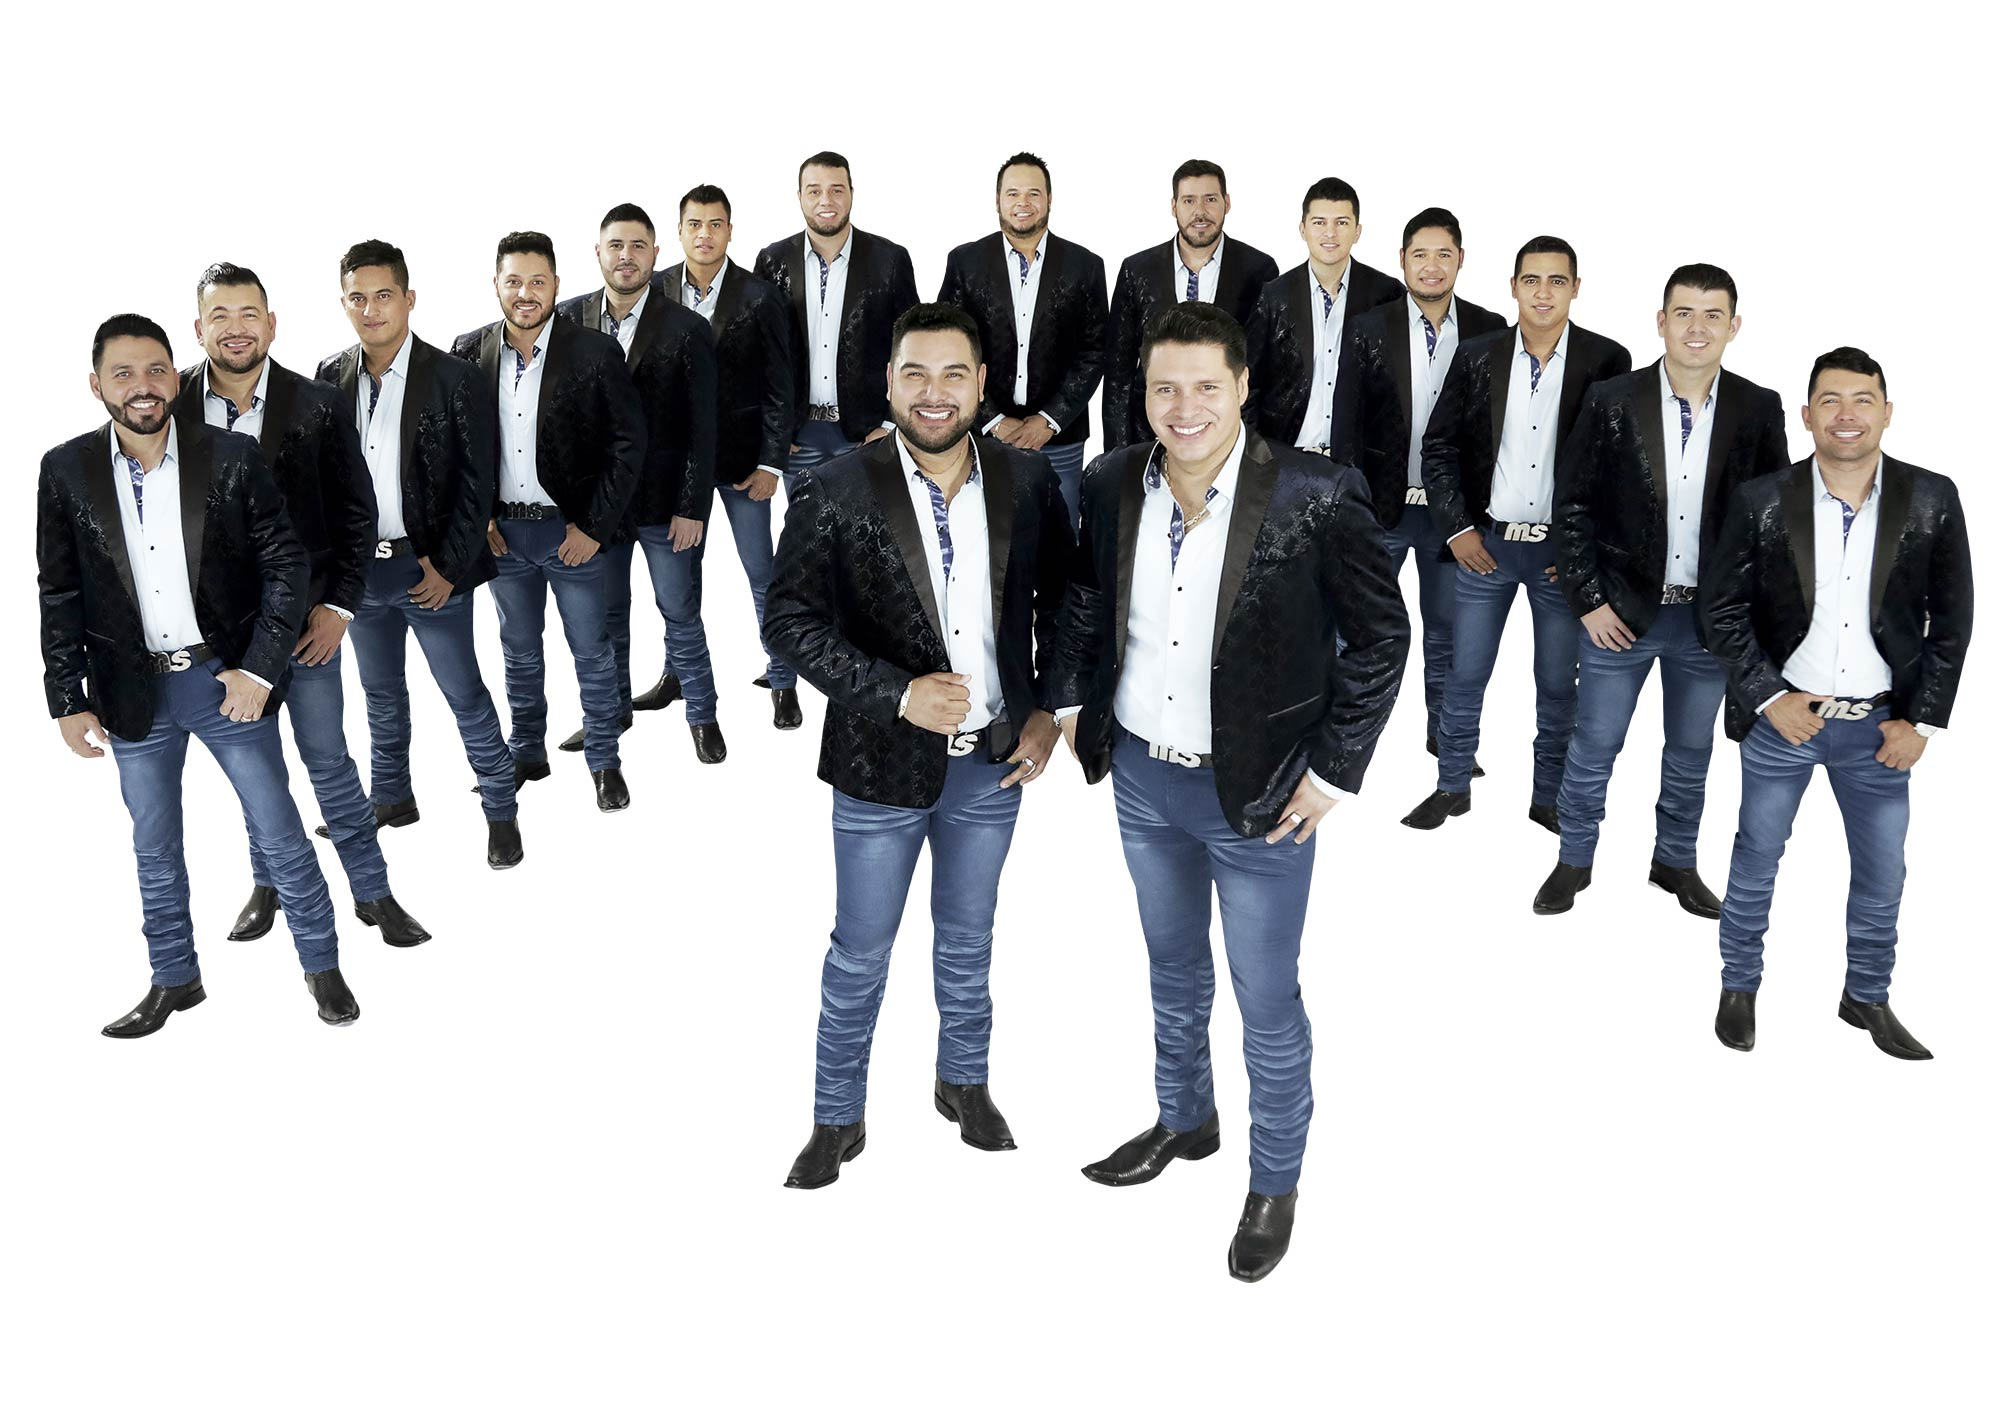 Banda-MS-photo_2000x1422.jpg